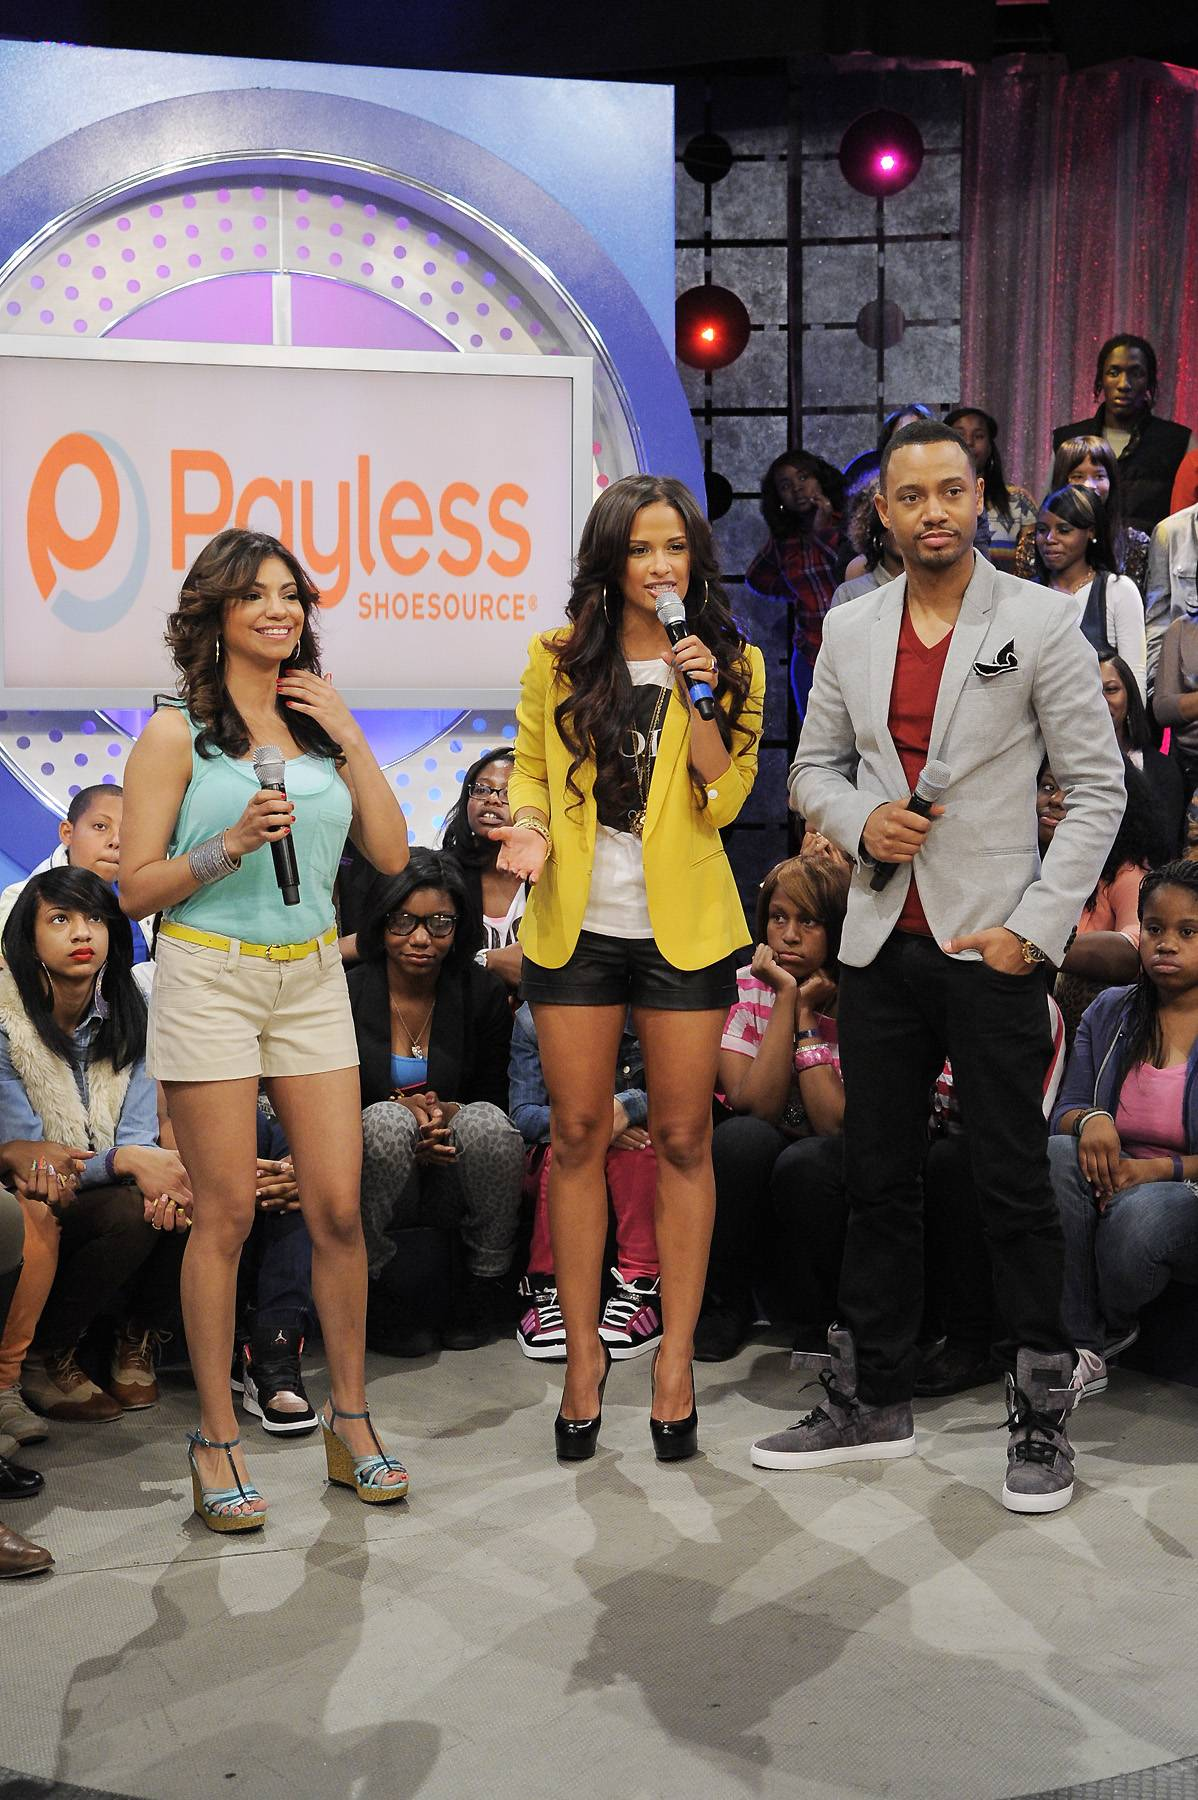 Makeover Time - Audience member who received a Payless makeover at 106 & Park, April 5, 2012. (photo: John Ricard / BET)